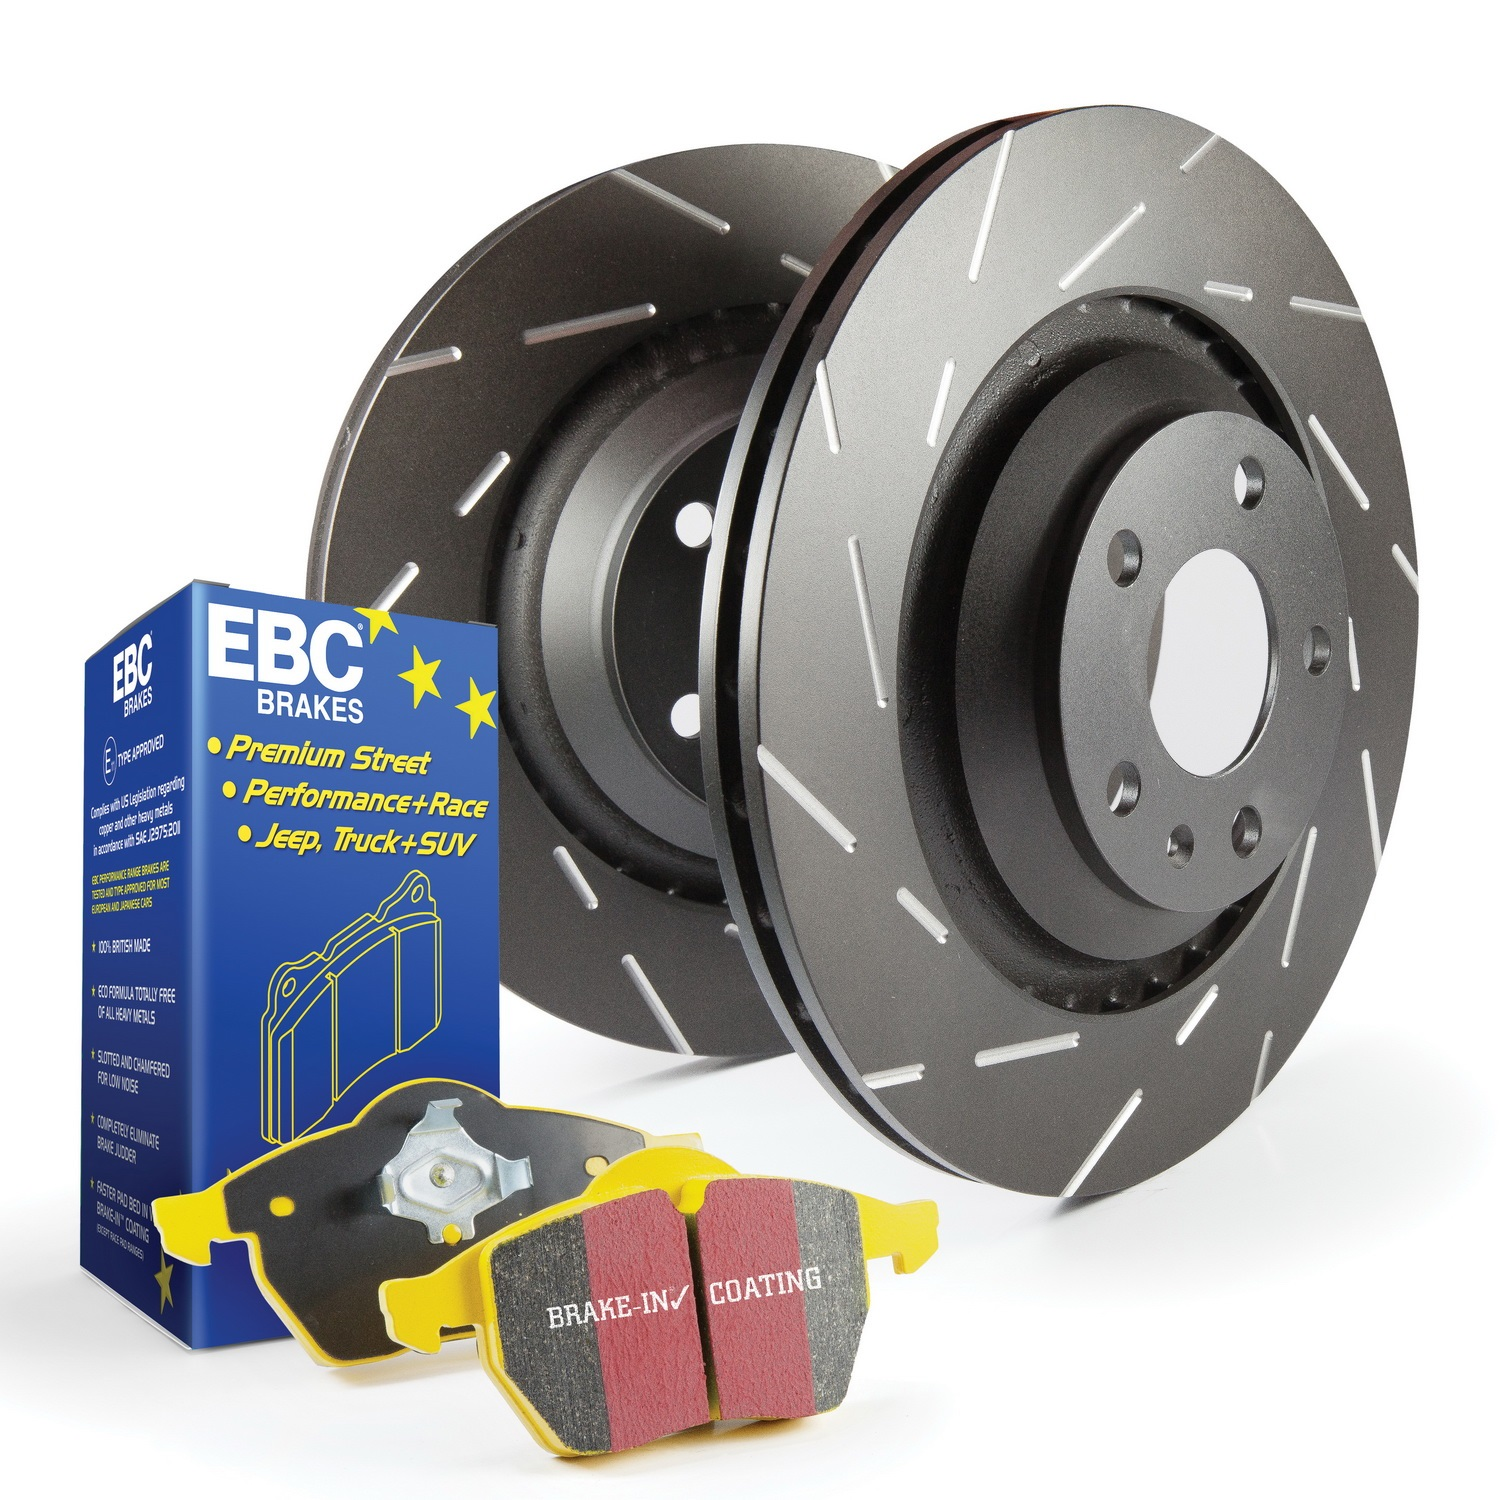 EBC Brakes S9KF1748 S9 Kits Yellowstuff and USR Rotors Fits 15-18 Yukon XL